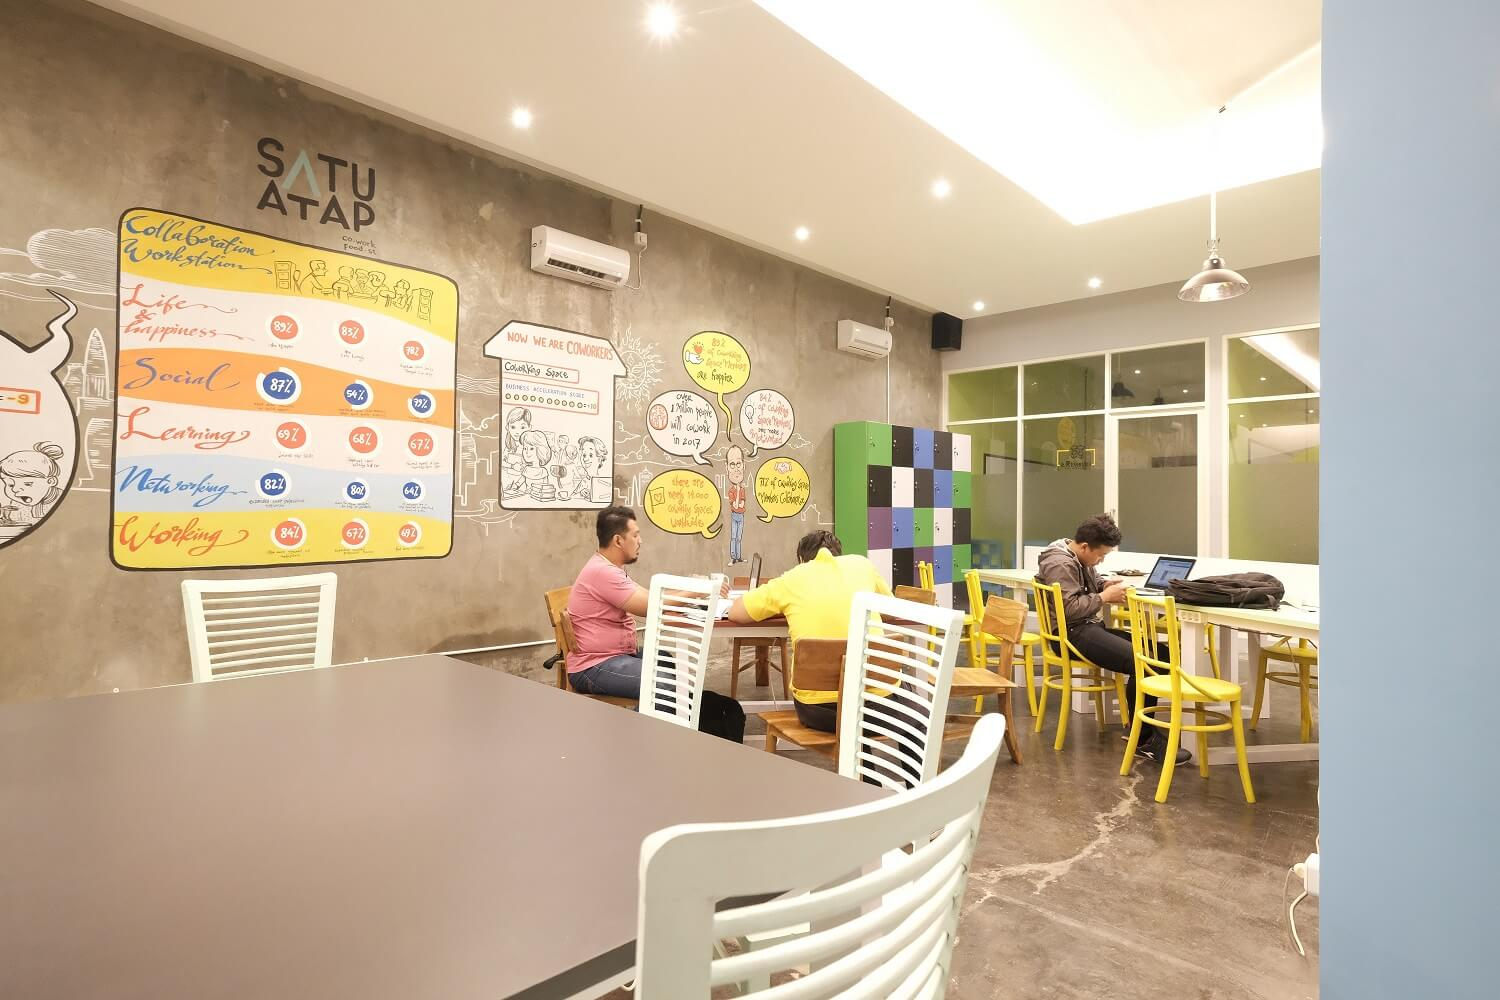 satu-atap-coworking-space-food-station-virtual-office-surabaya-1